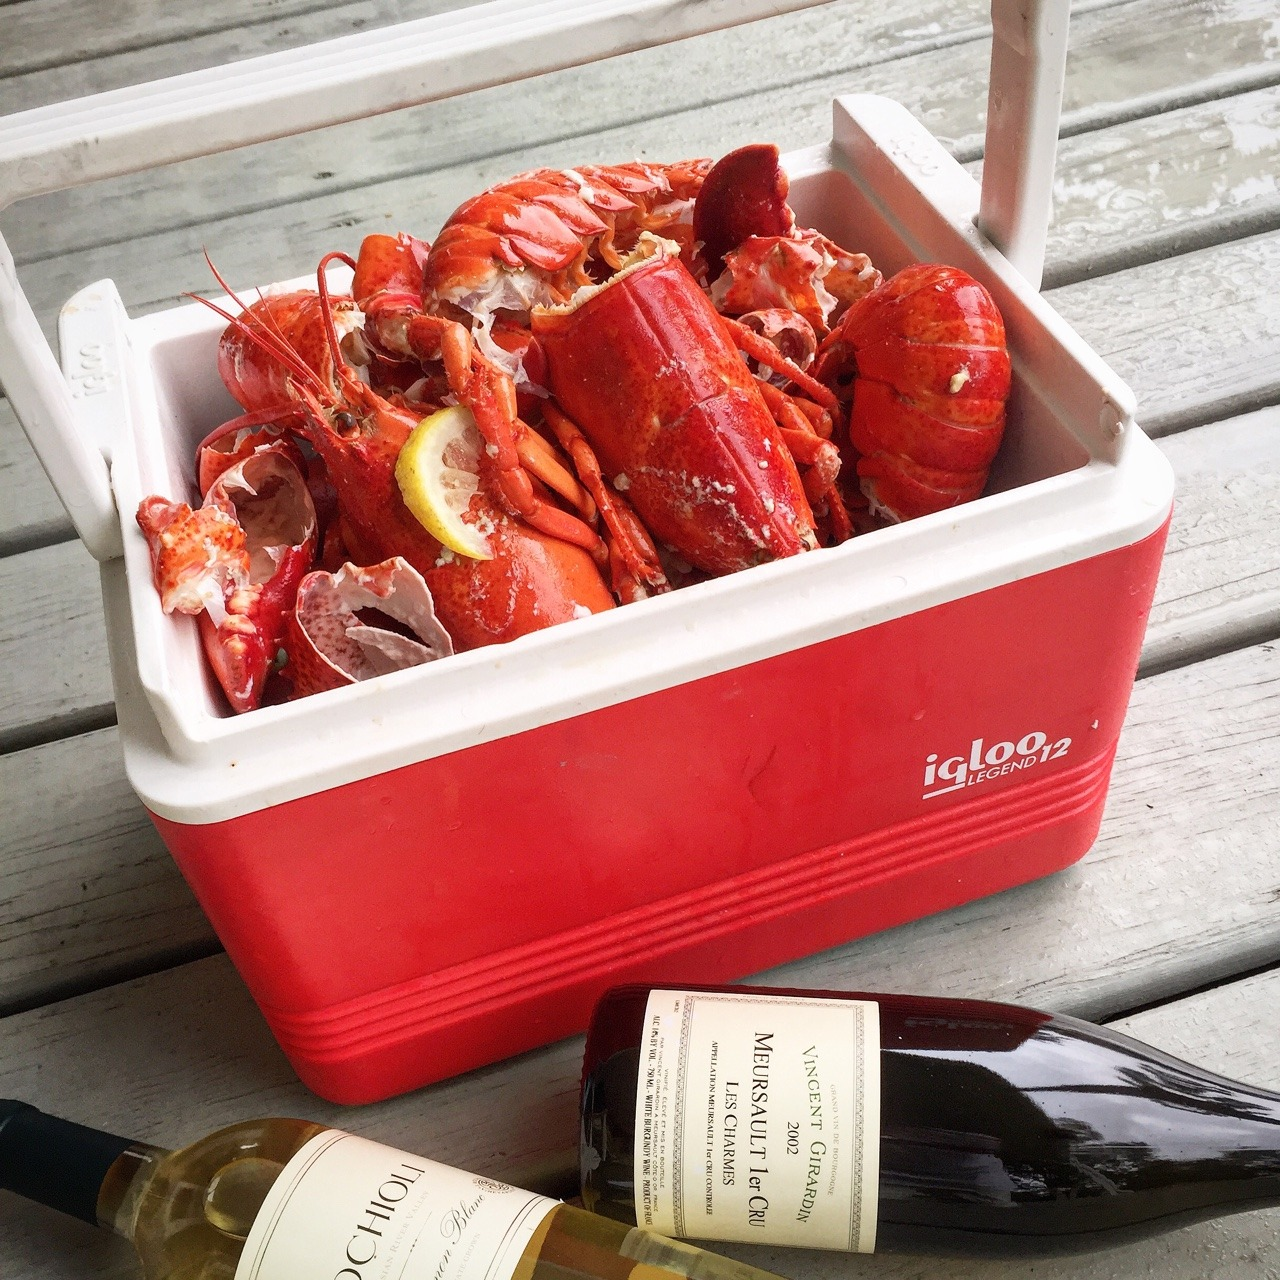 Picnic. Boothbay Harbor, Maine.  #maine #boothbayharbor #summertime #lobsterforlunch